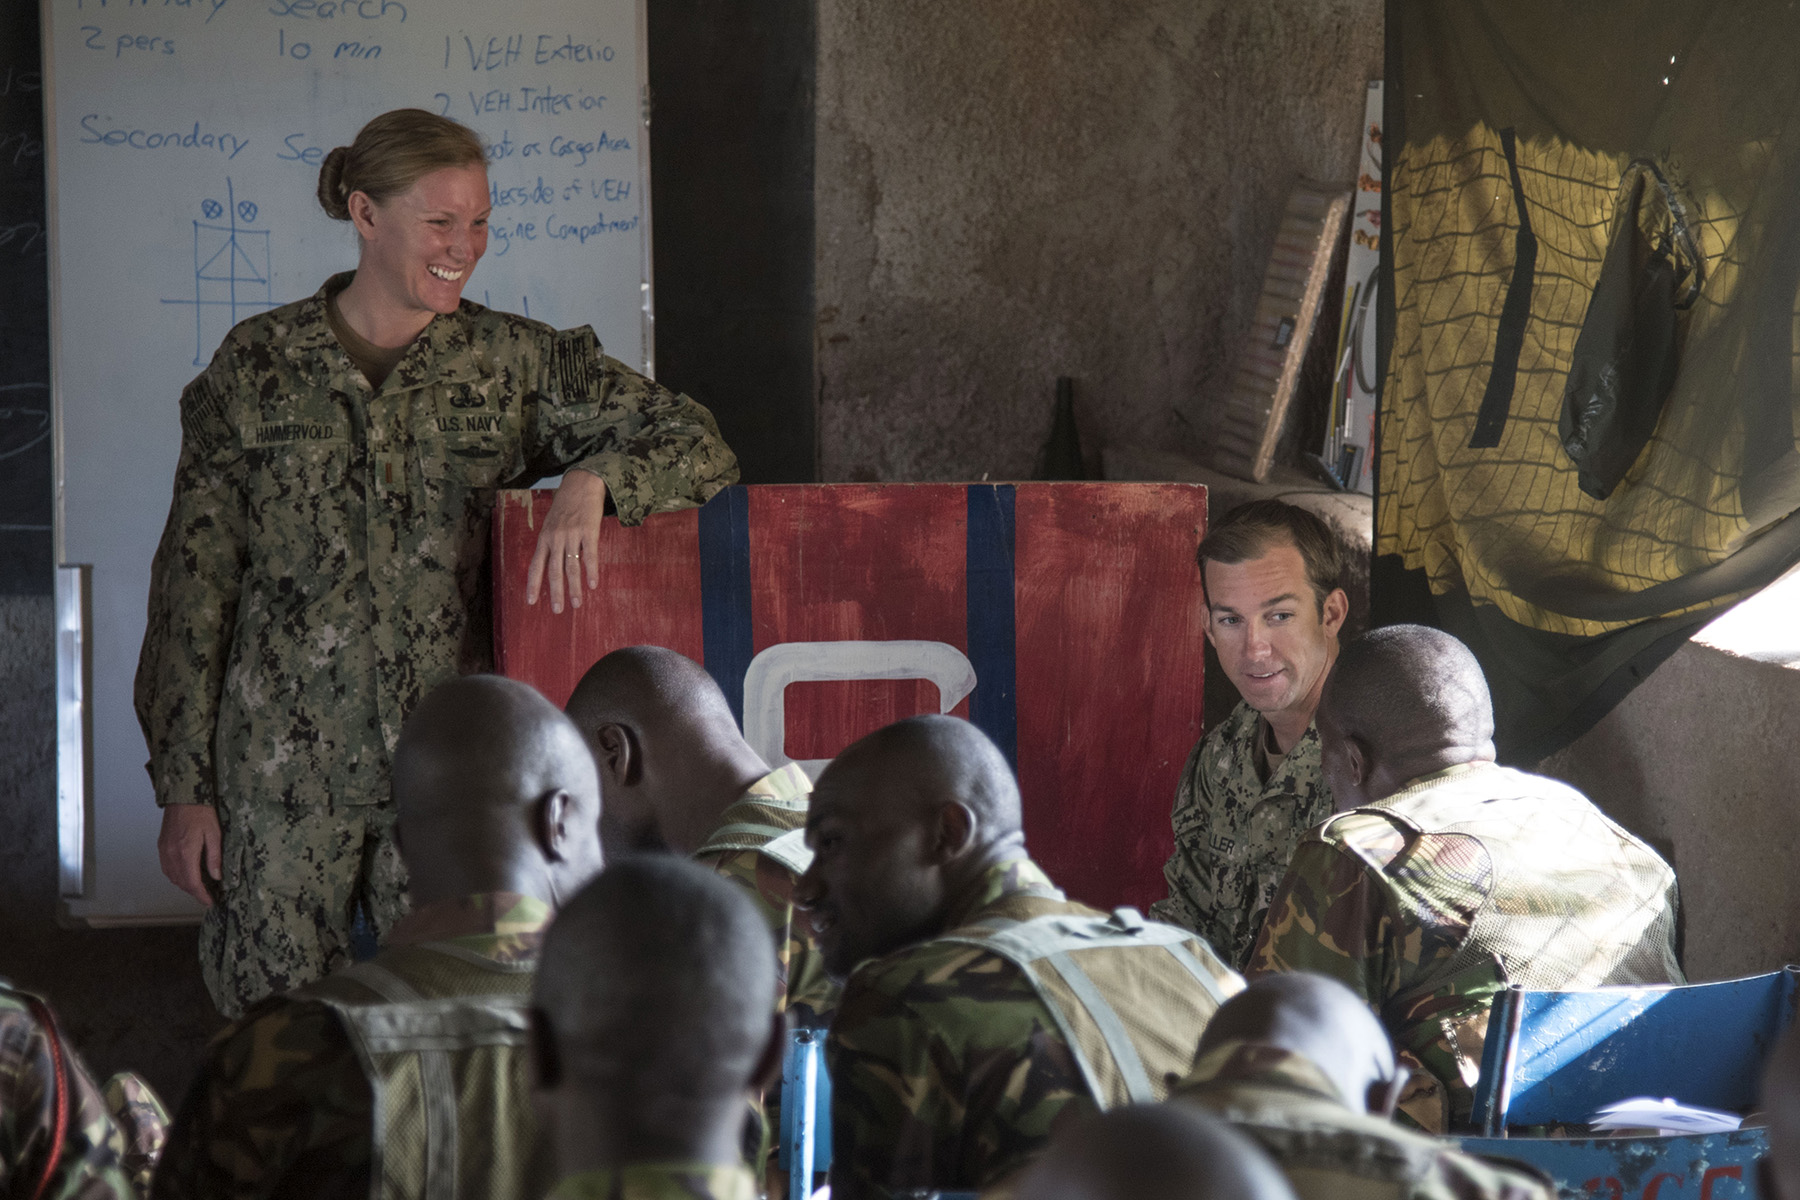 KENYA – U.S. Navy Ensign Christina Hammervold and Chief Petty Officer Ryan Waller, Task Force Sparta, speak with Kenya Defense Forces Warrant Officer Athumani, a squadron sergeant major, before resuming the medical portion of Deliberate Kindle 2016, Sept. 13, at a training center in Kenya. U.S. Navy explosive ordnance disposal technicians and a dive independent duty corpsman provided counter-improvised explosive device, tactical combat medical care, and train-the-trainer skills to approximately 53 KDF soldiers and officers in preparation the KDF's deployment with the African Union Mission in Somalia. (U.S. Air Force photo by Staff Sgt. Tiffany DeNault)